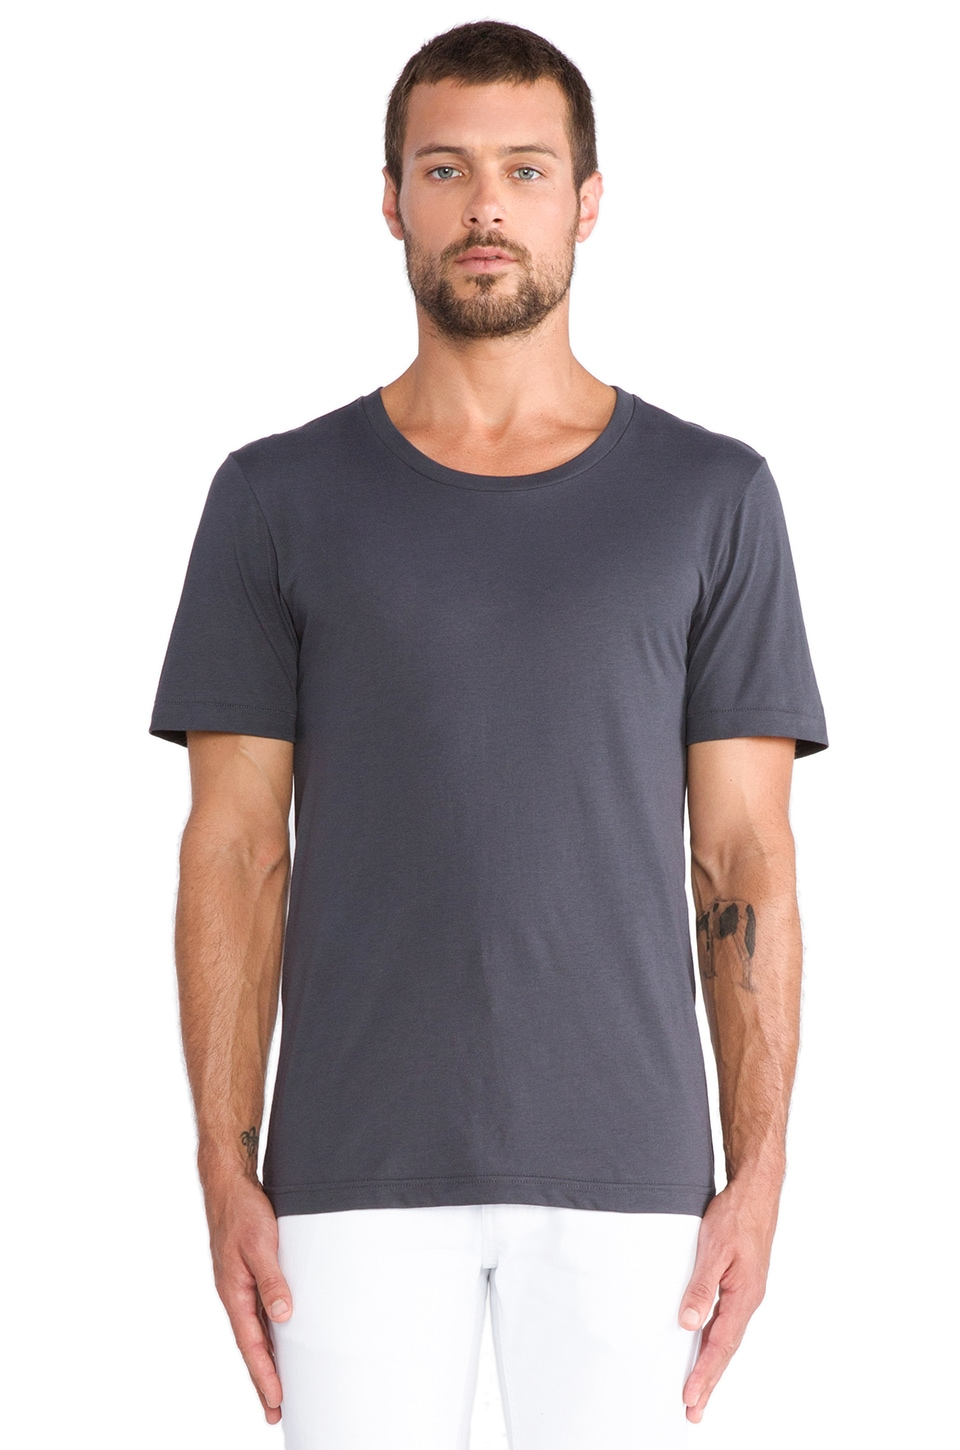 BLK DNM T-Shirt 3 in Uniform Grey